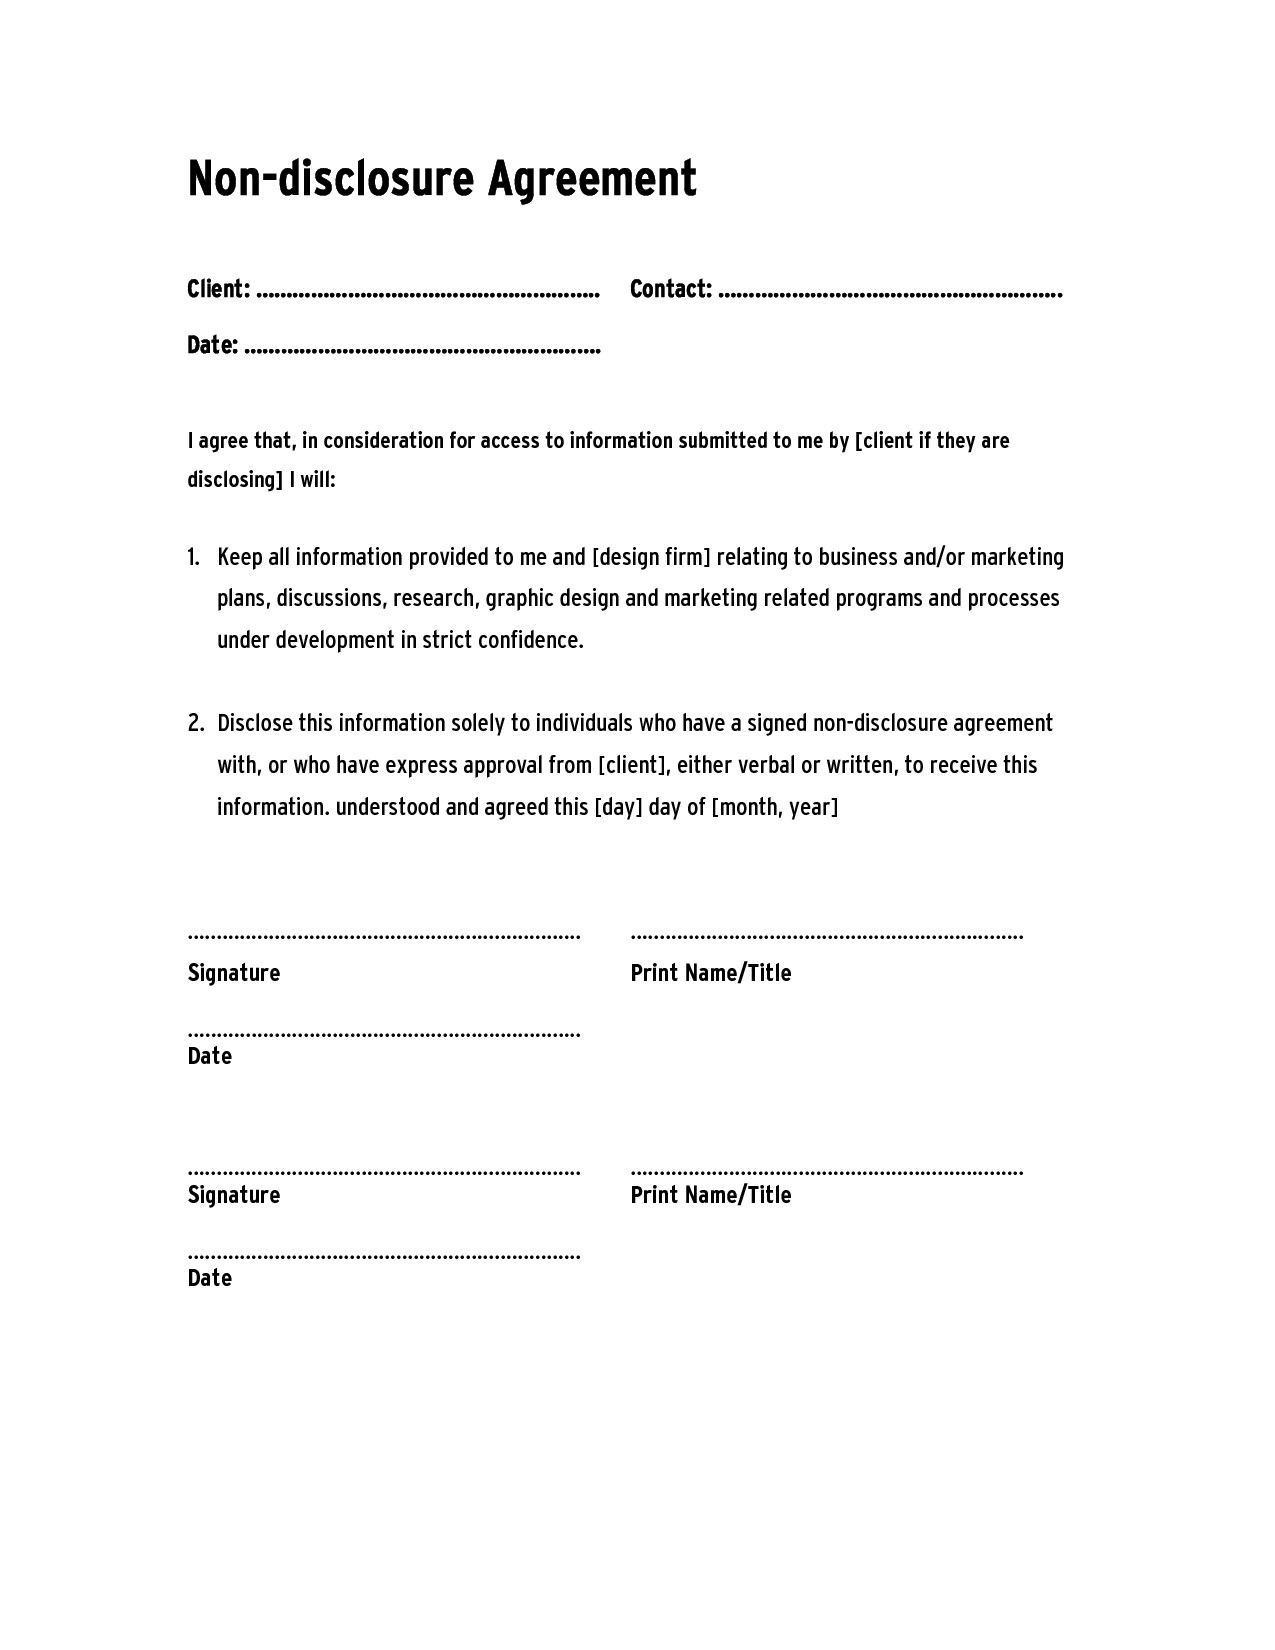 Hipaa Confidentiality form for Employees Awesome Non Sure Agreement form Free Business Sale Nda Template Pdf